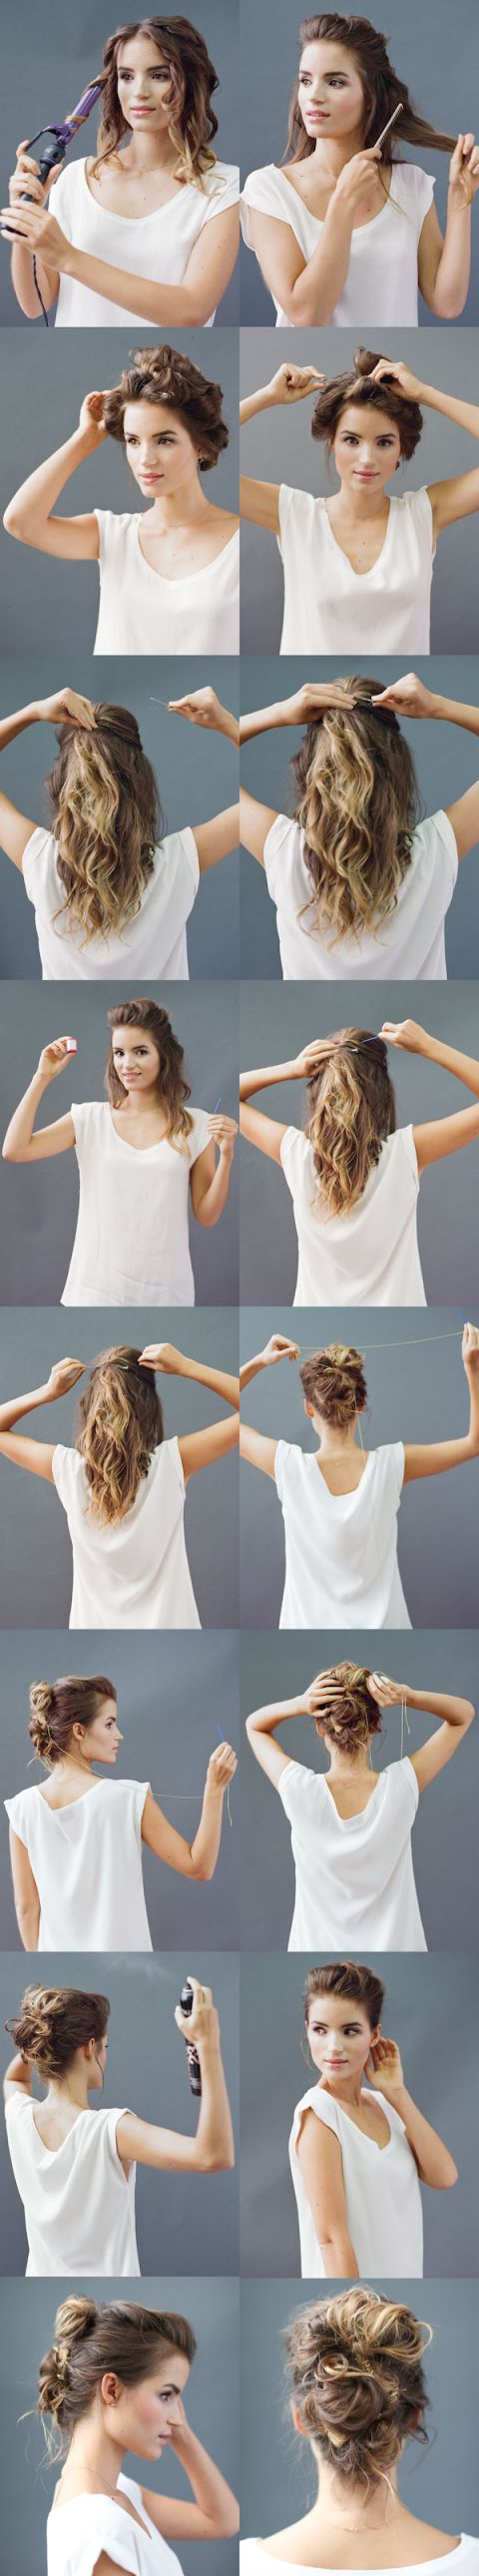 17 Best images about Hair \u0026 Make Up on Pinterest | Side ponytail ...